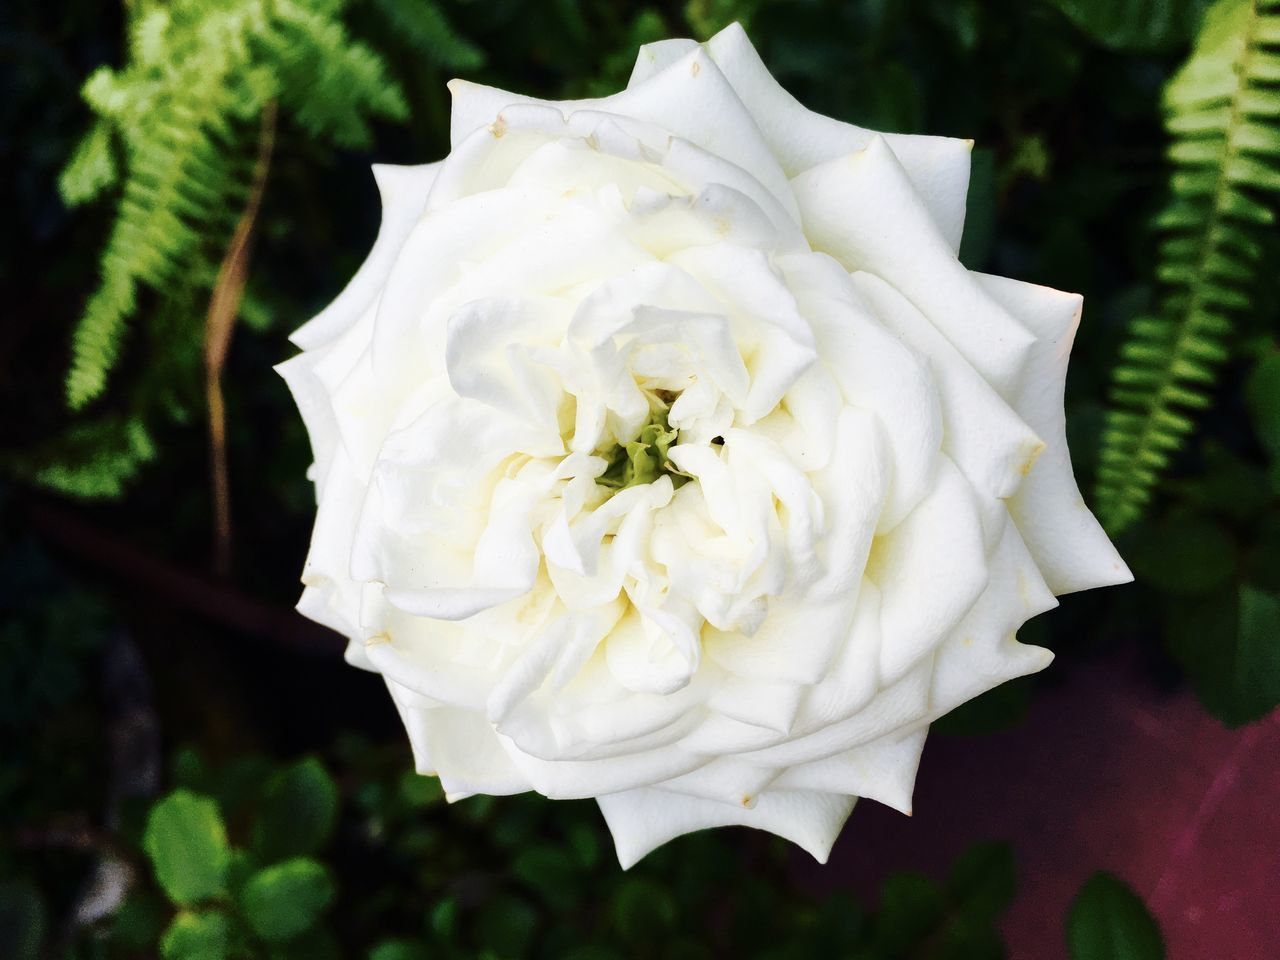 Beauty In Nature Blooming Close-up Flower Nature Outdoors Rose - Flower White Color Tropical Climate Single Flower Single Rose Garden Photography Garden Flowers In Bloom